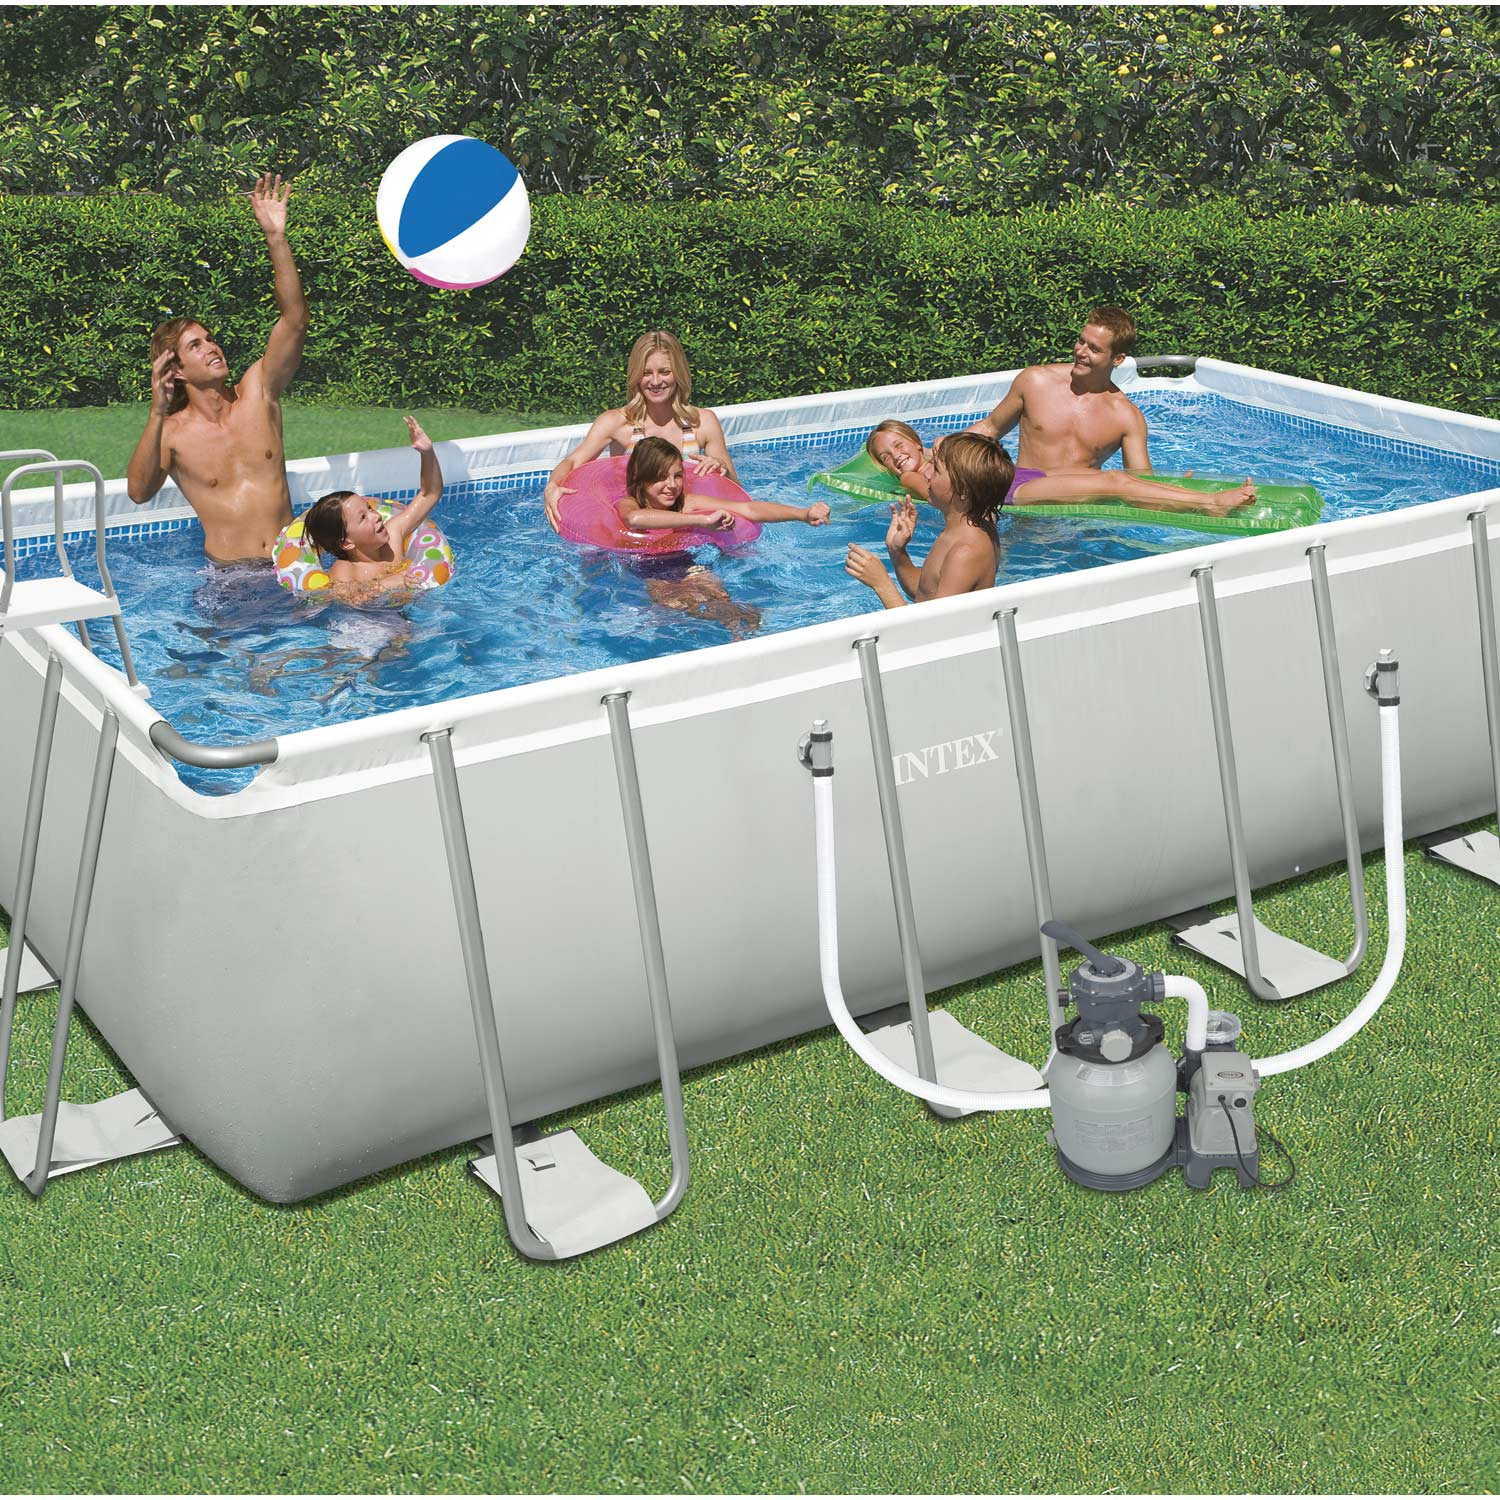 Piscine hors sol autoportante tubulaire ultra silver intex for Piscine hors sol enterree